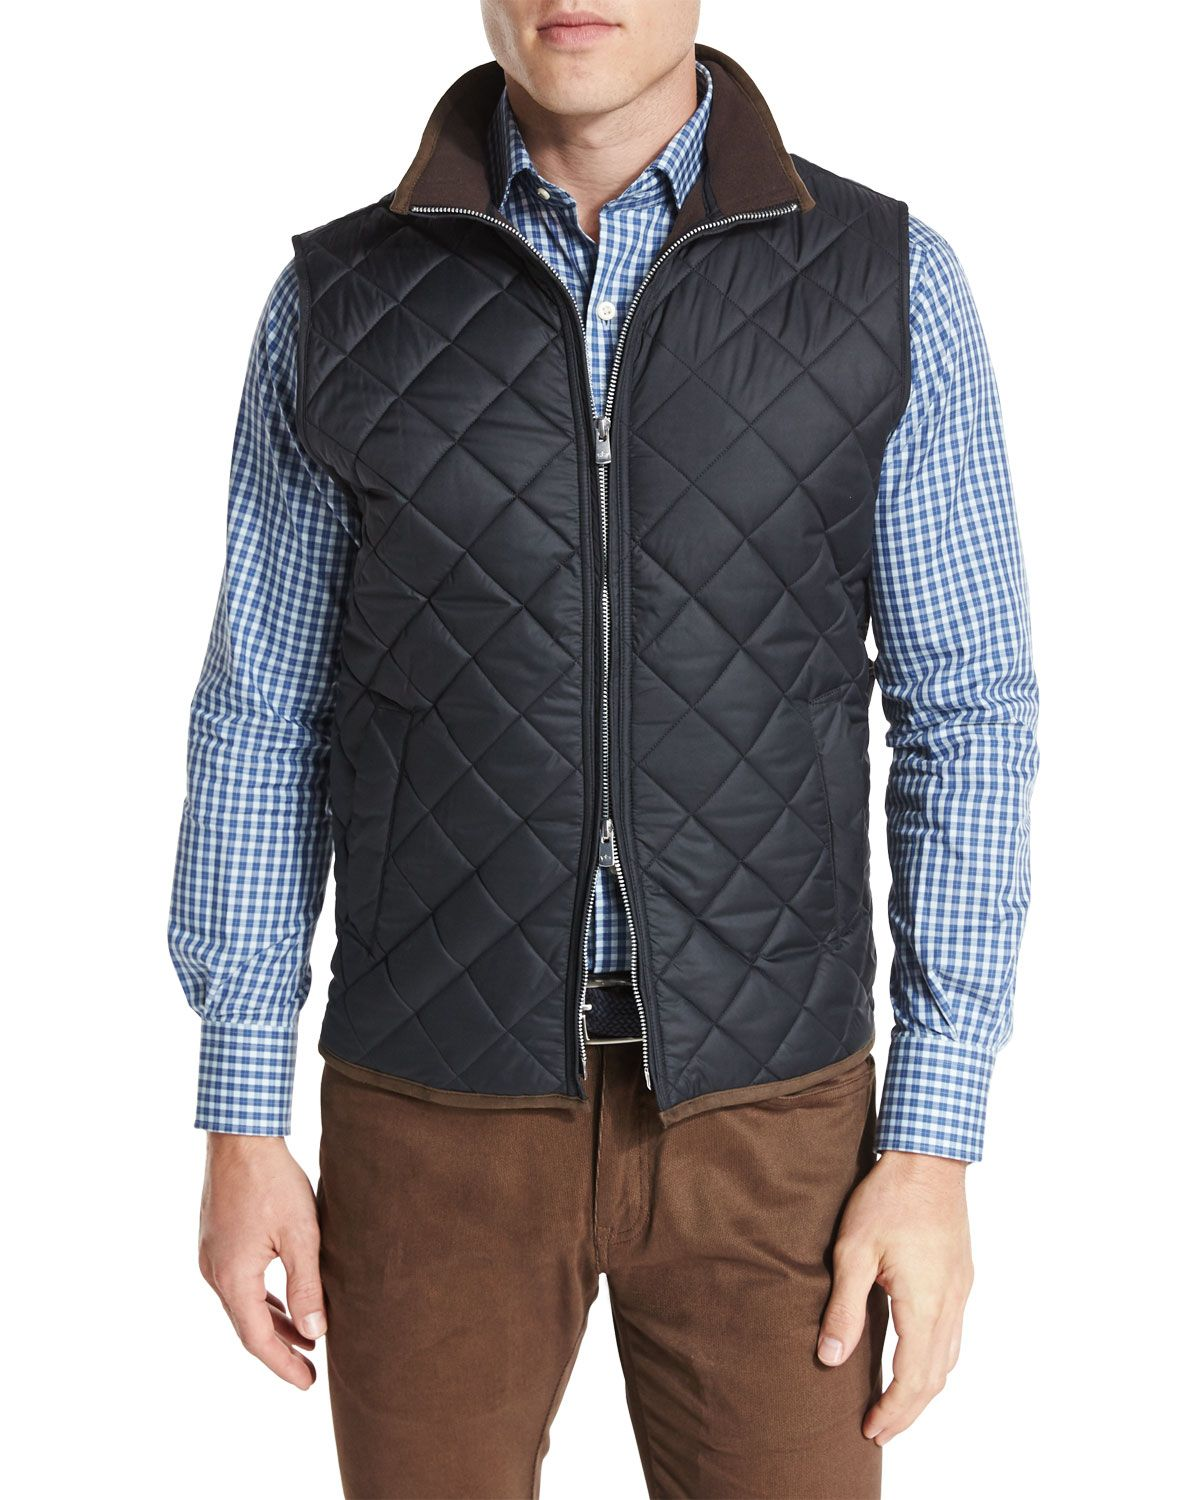 Peter Millar Hudson Lightweight Quilted Vest, Black